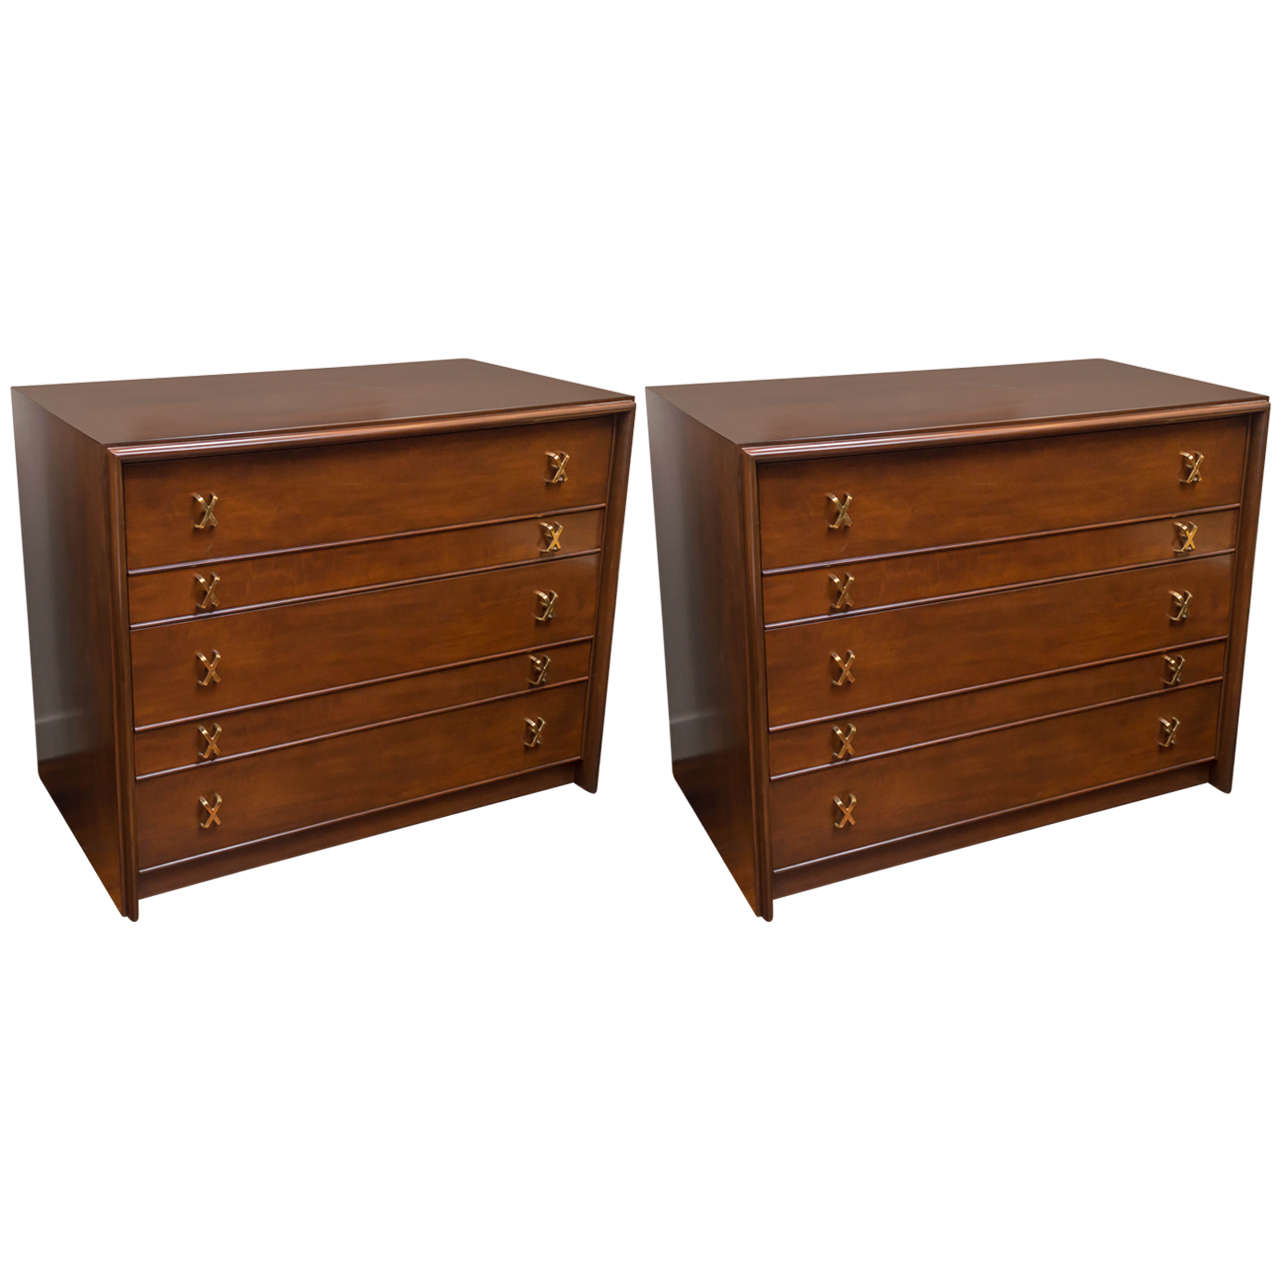 Pair of Paul Frankl Chests of Drawers